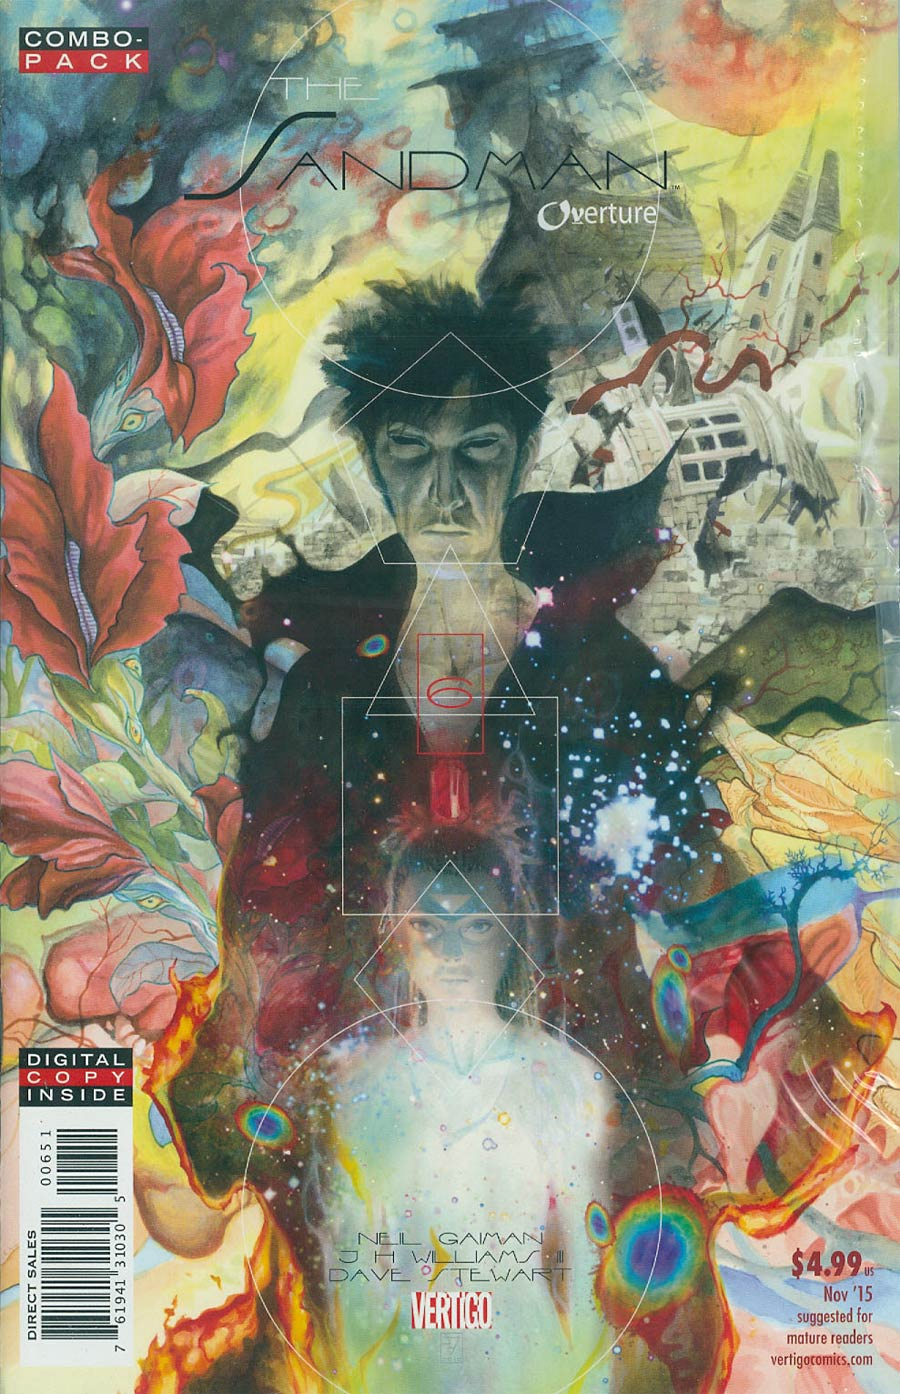 Sandman Overture #6 Cover C Combo Pack With Polybag